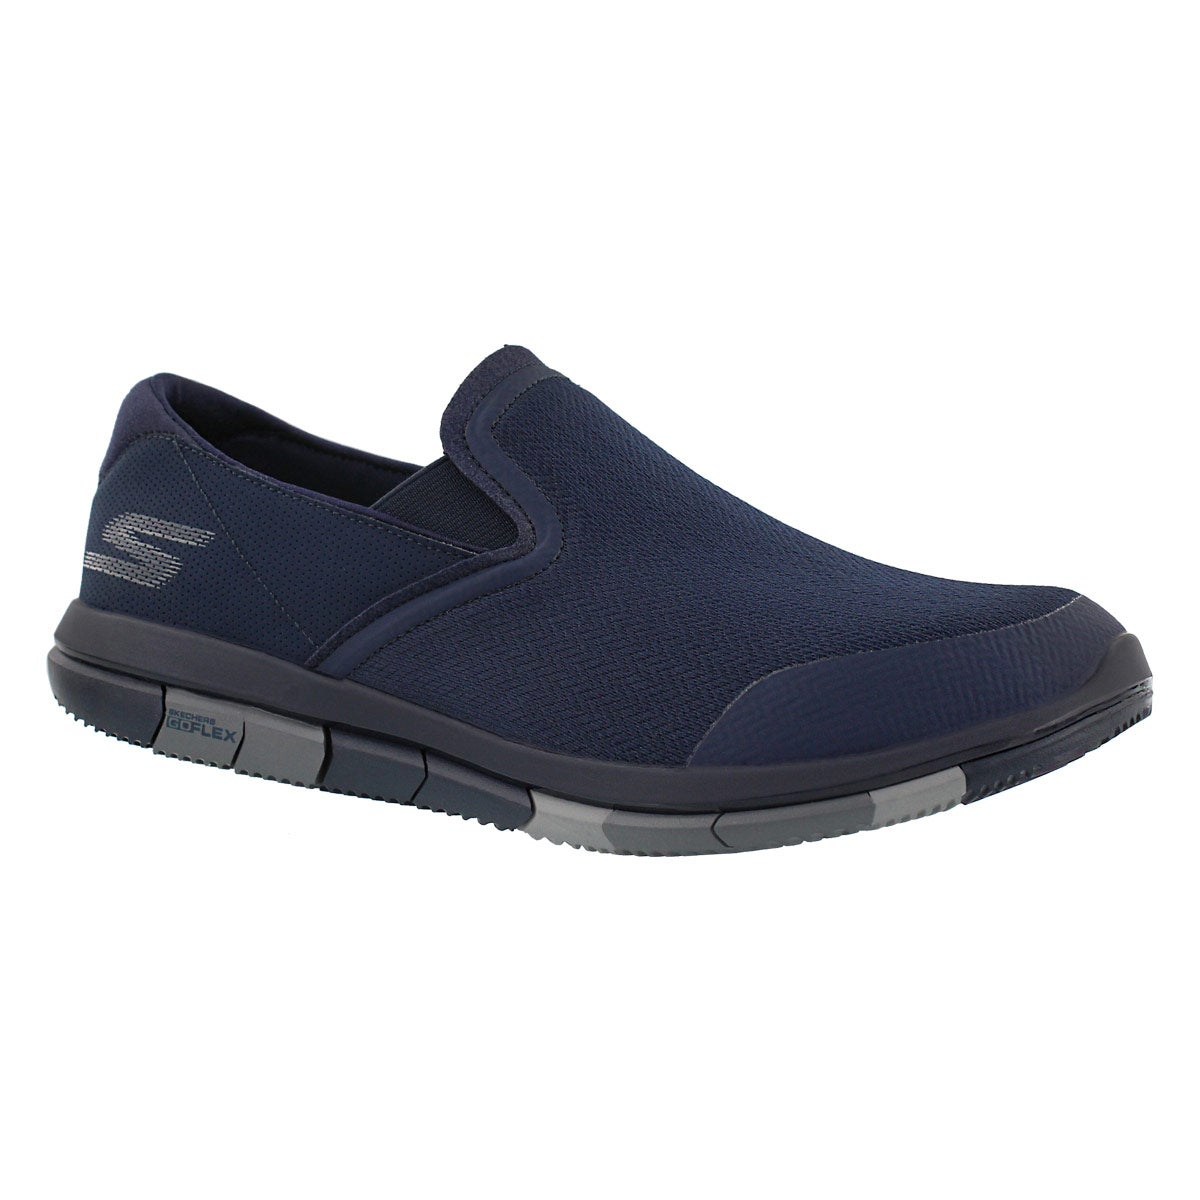 Mns GOflex nvy/gry walking shoe